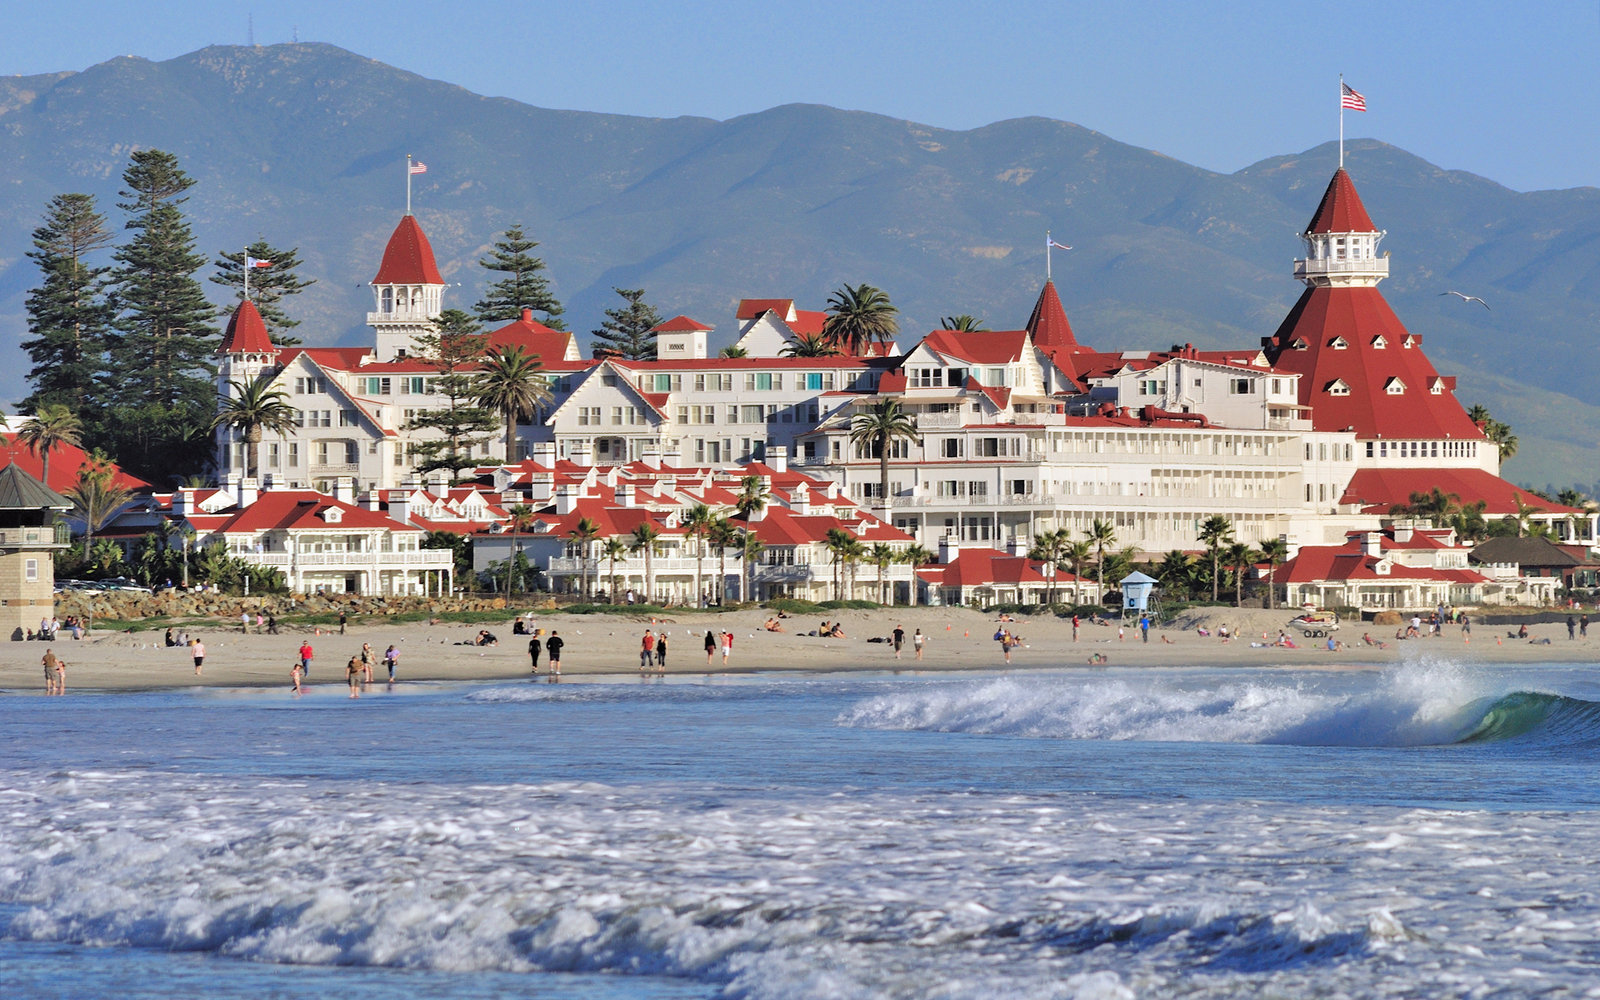 hotel del coronado travel leisure